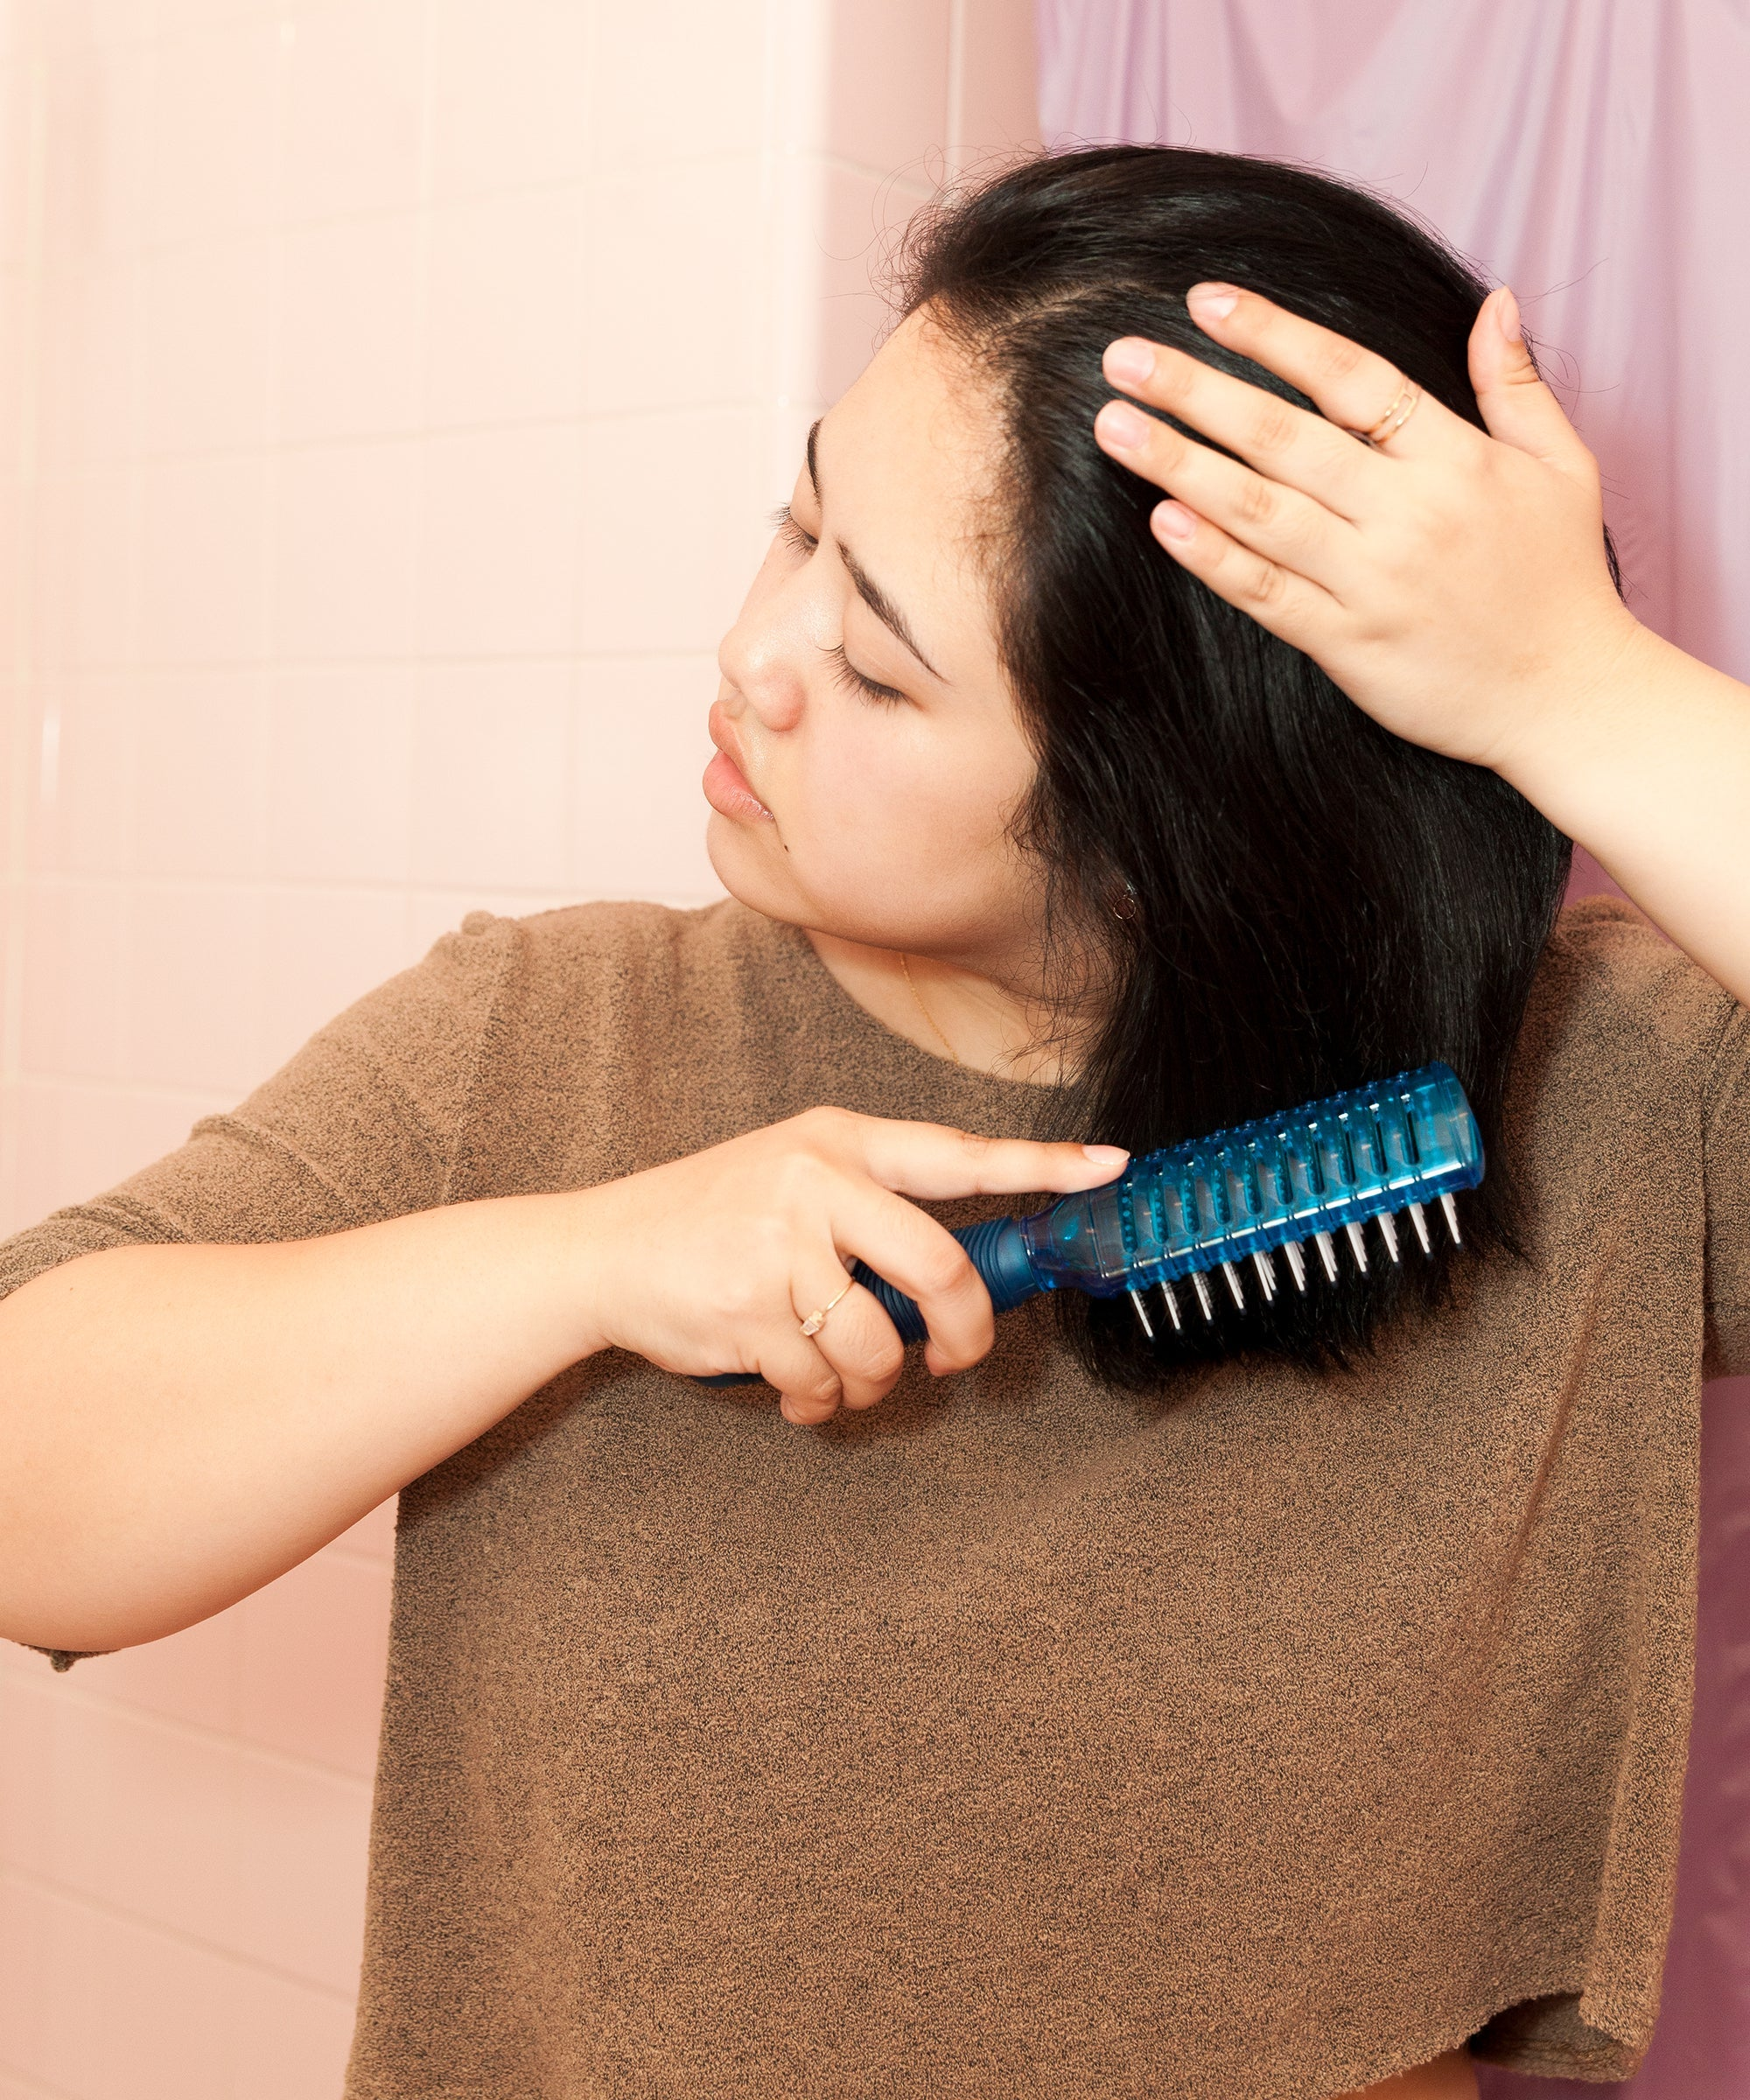 How To Cut Your Own Hair At Home - Tips From The Pros